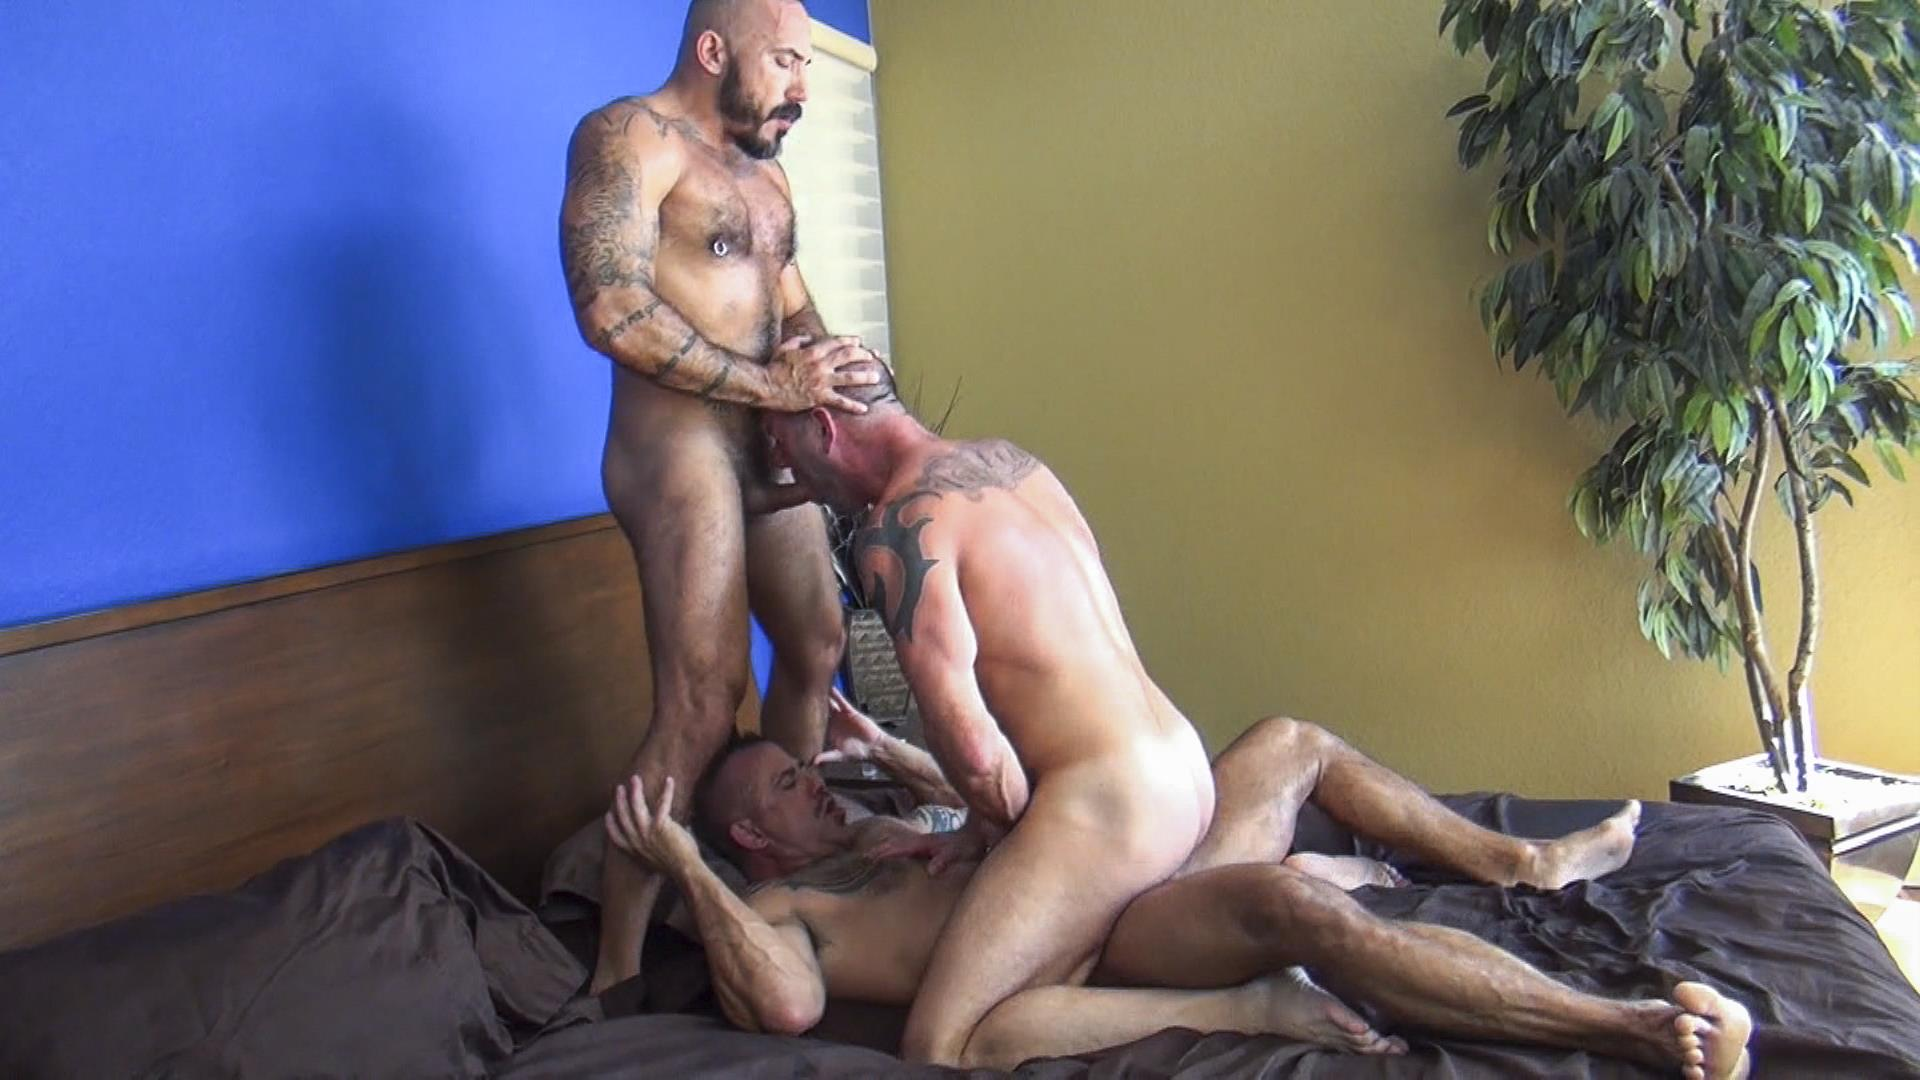 Raw Fuck Club Alessio Romero and Jon Galt and Vic Rocco Hairy Muscle Daddy Bareback Amateur Gay Porn 4 Hairy Muscle Daddy Threeway Double Bareback Penetration